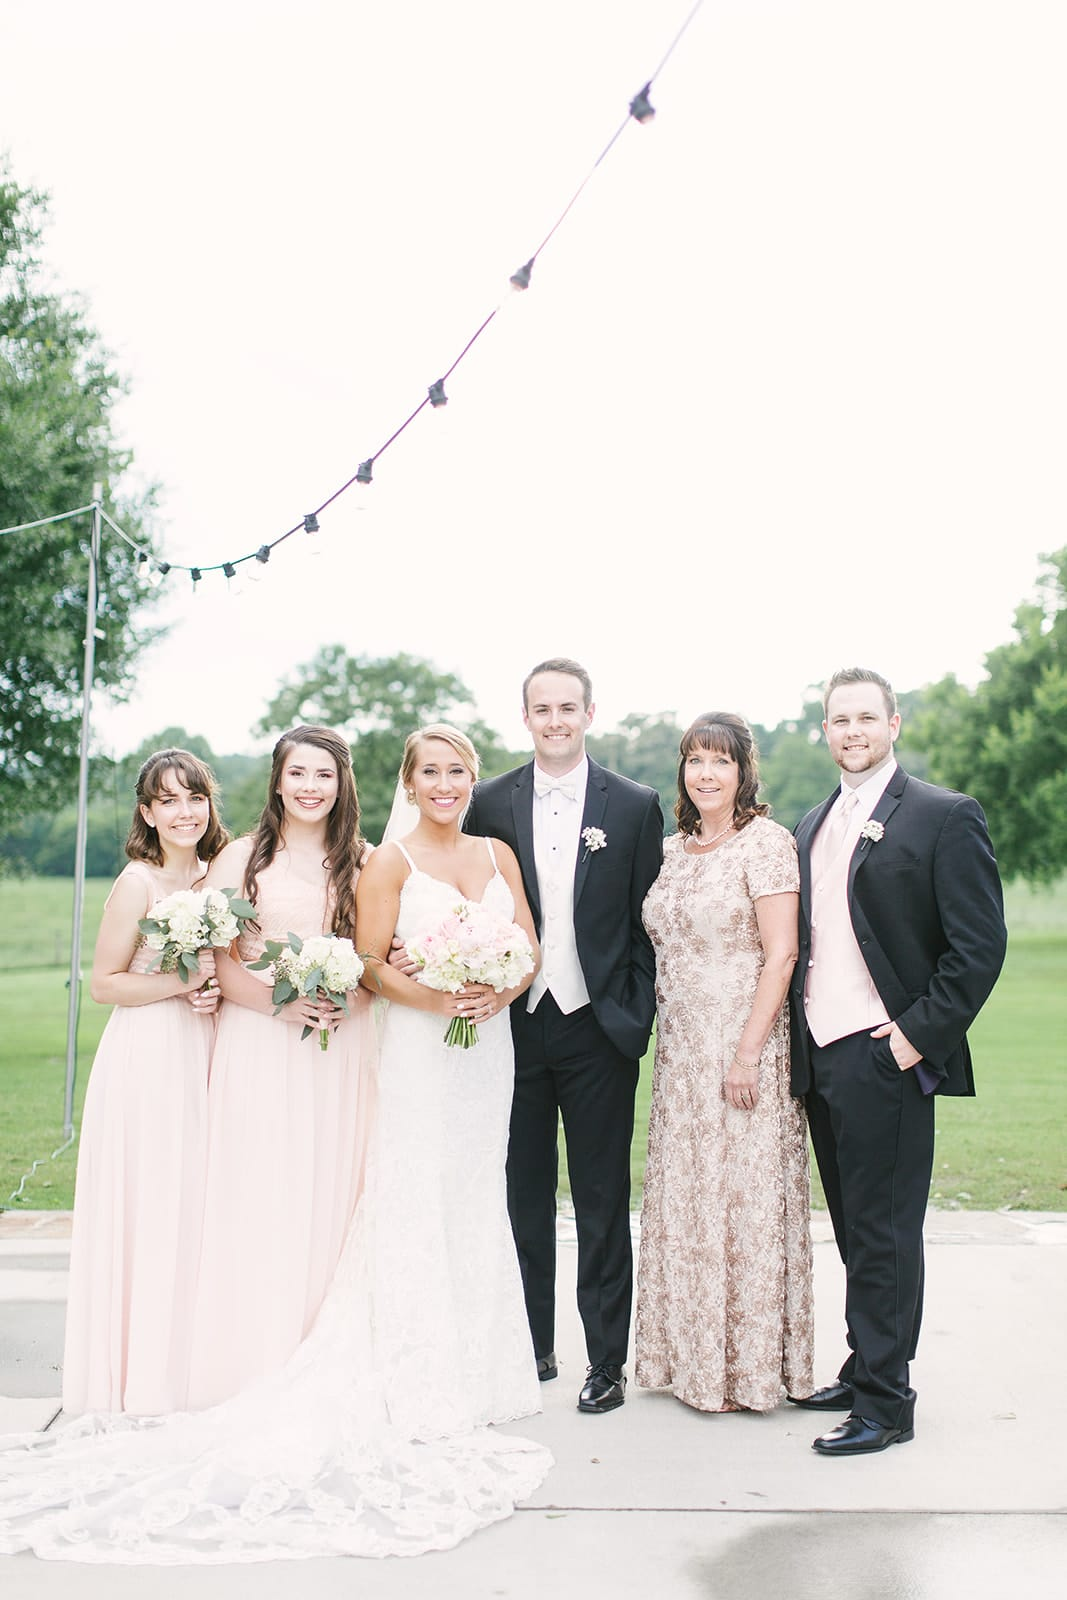 Bride and groom pose with family before their spring wedding coordinated by Magnificent Moments Weddings at The Diary Barn